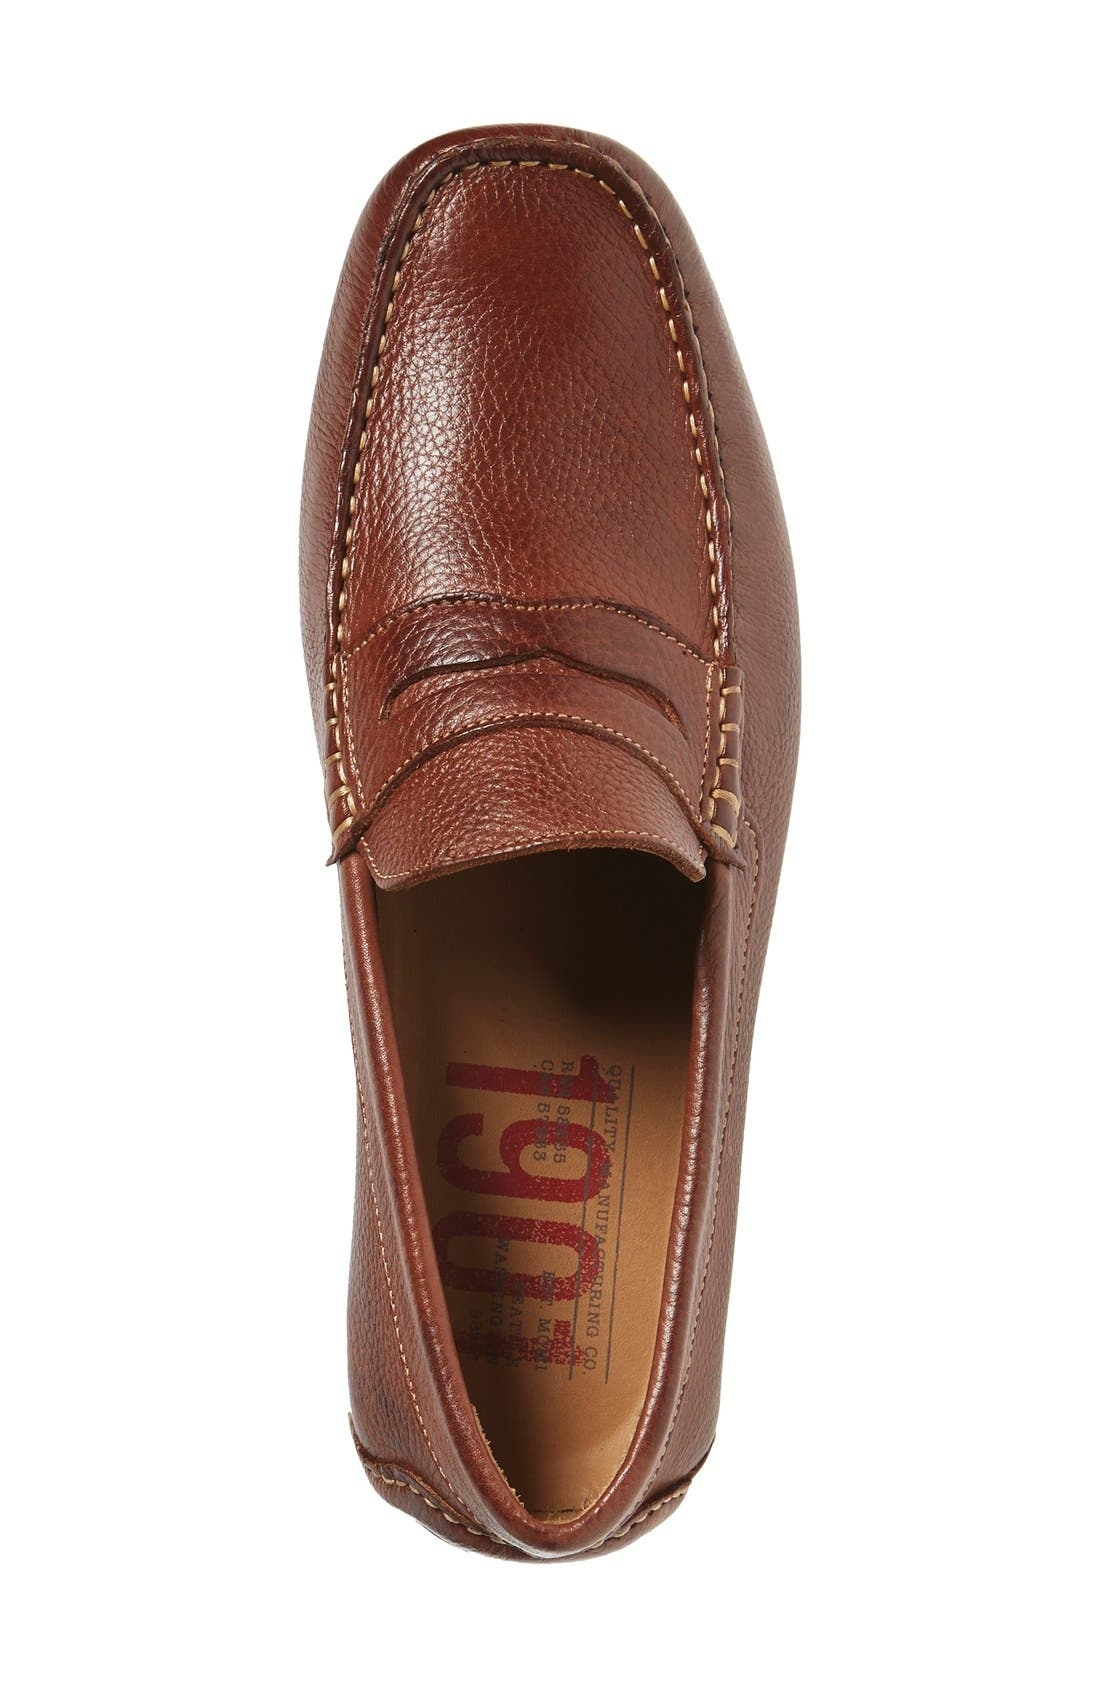 'Bermuda' Penny Loafer,                             Alternate thumbnail 3, color,                             TAN LEATHER